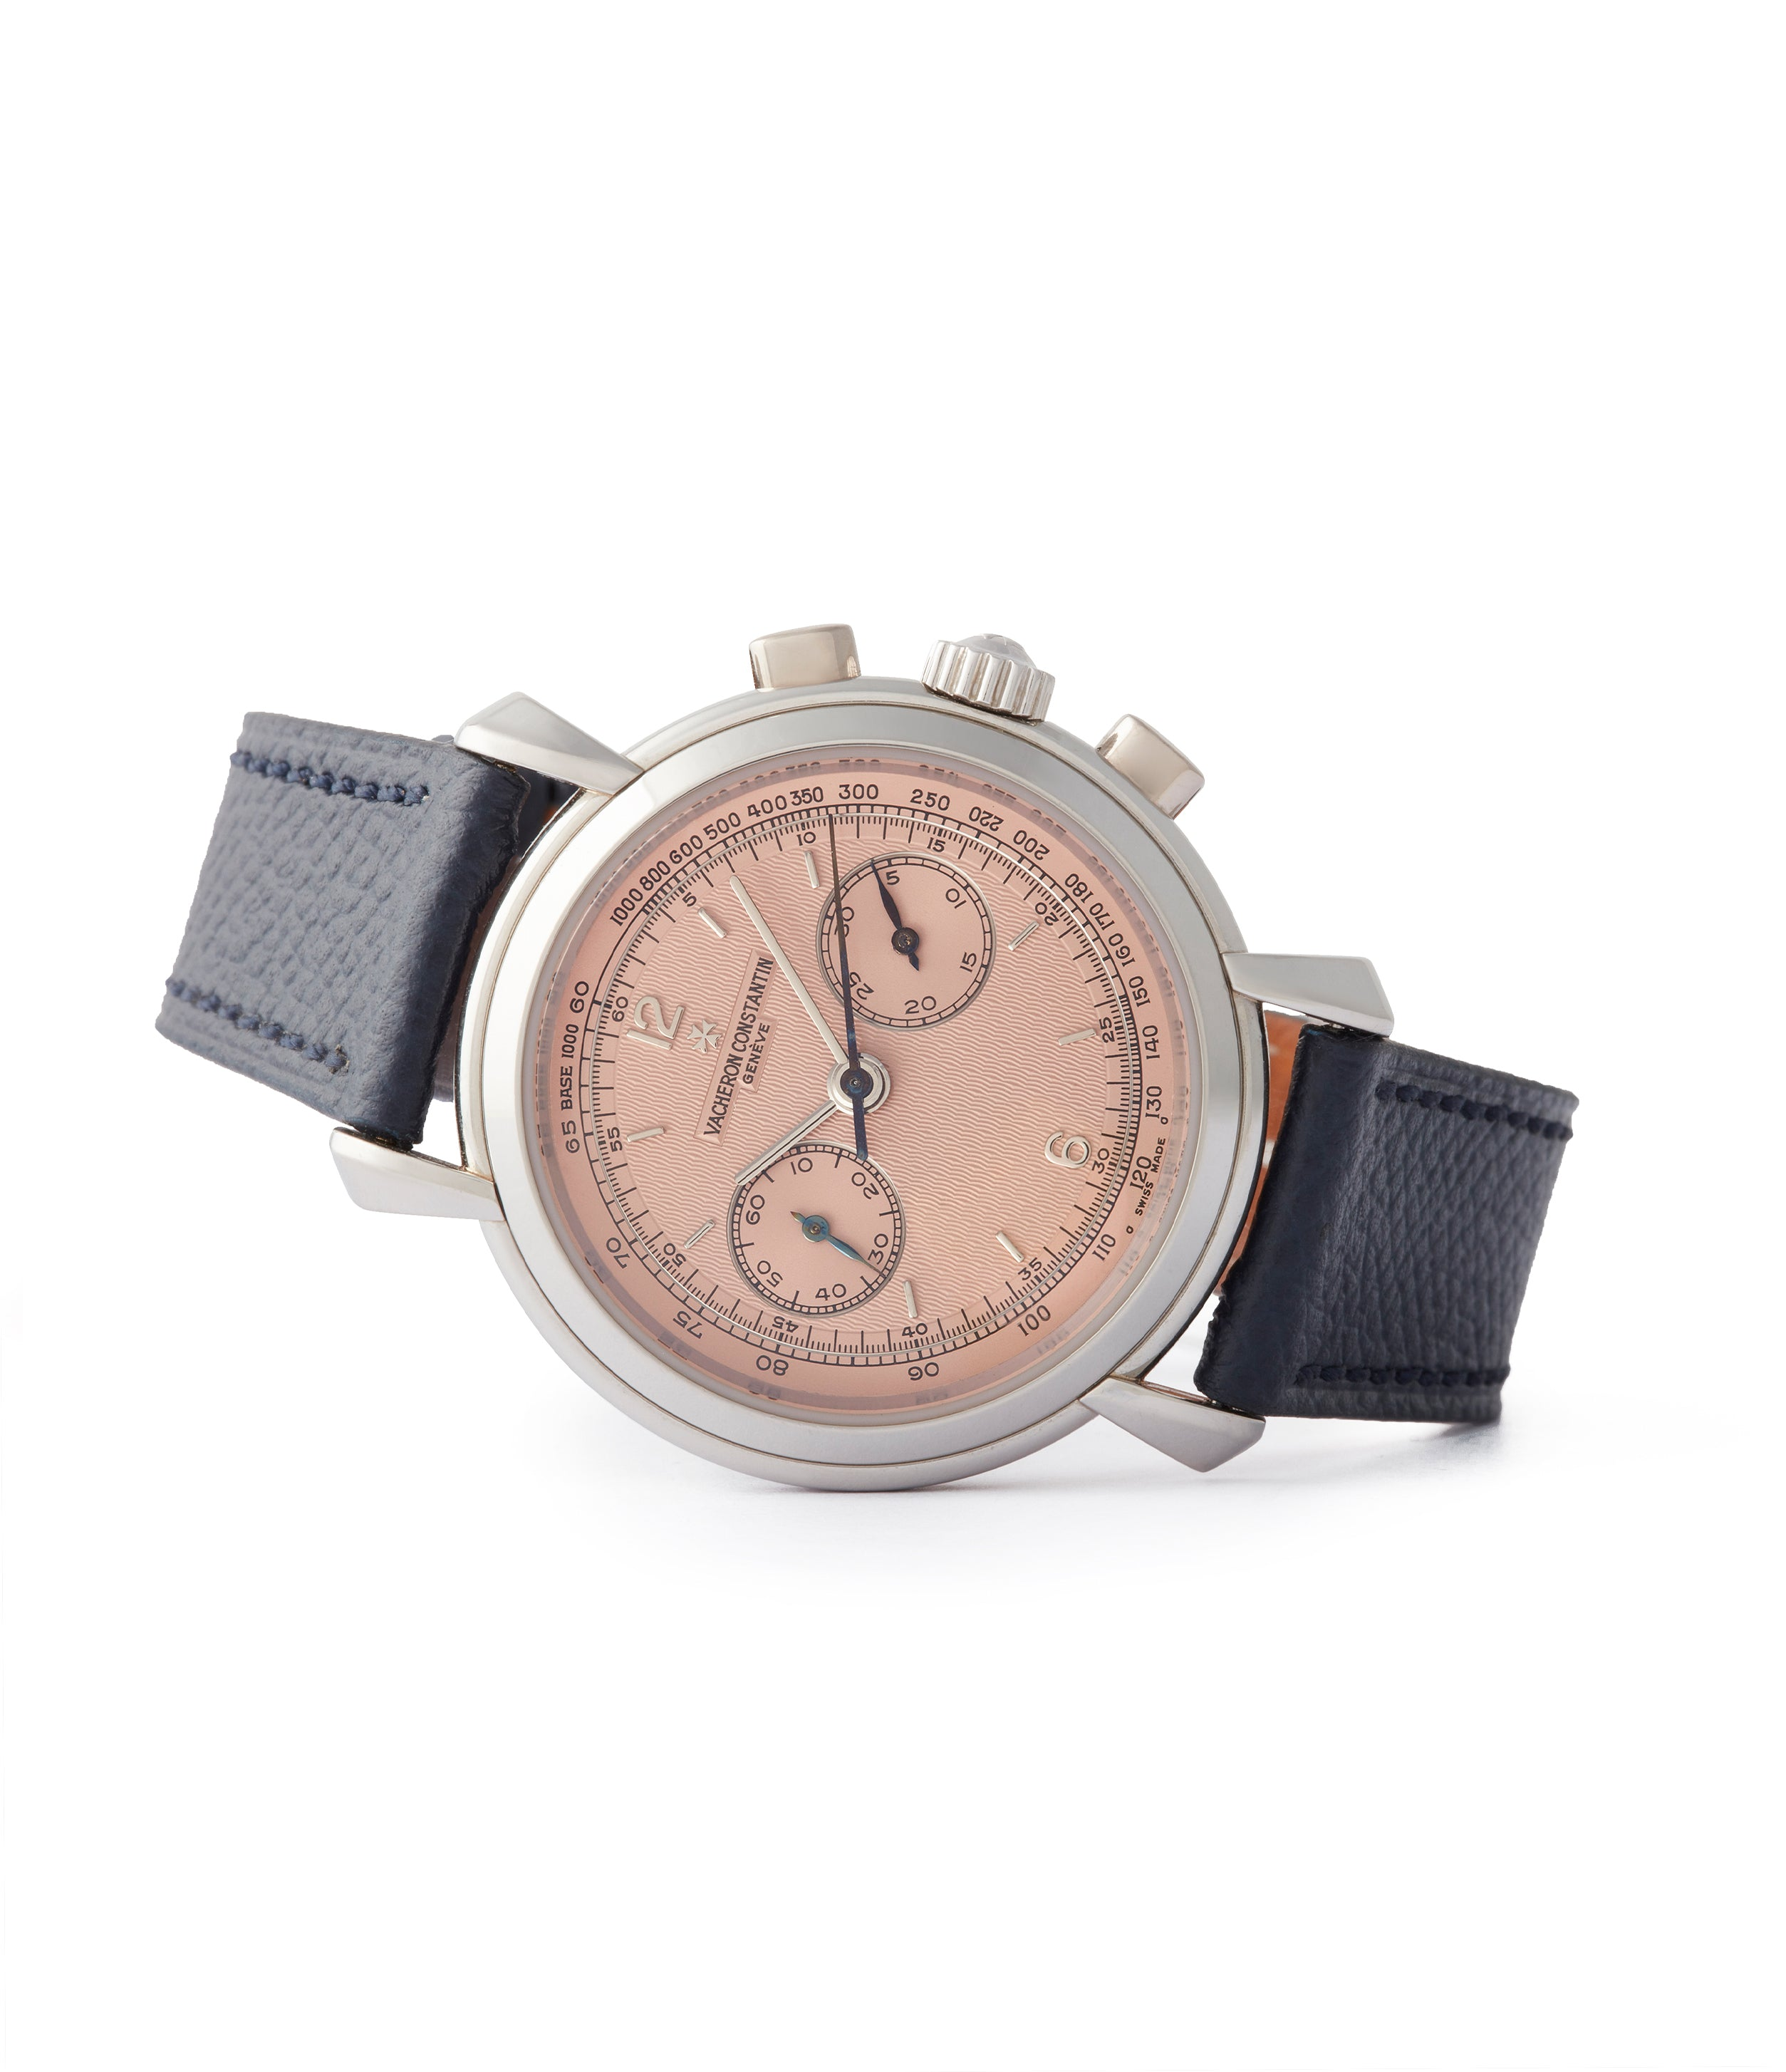 selling Vacheron Constantin Les Historiques Chronograph 47111/000P platinum salmon dial dress watch for sale online A Collected Man London UK specialist rare watches